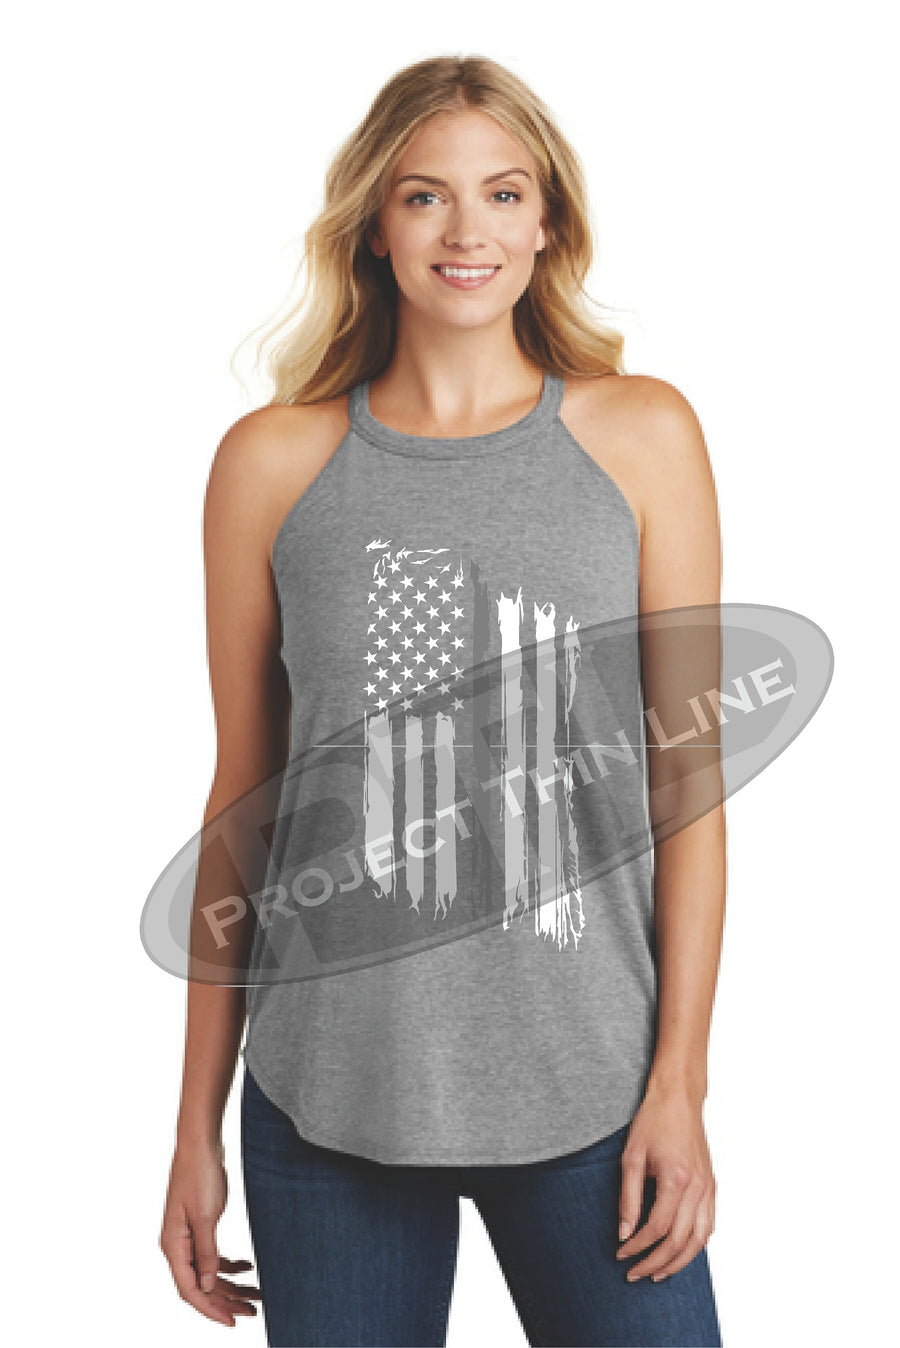 Black Tattered Thin SILVER Line American Flag Rocker Tank Top - FRONT